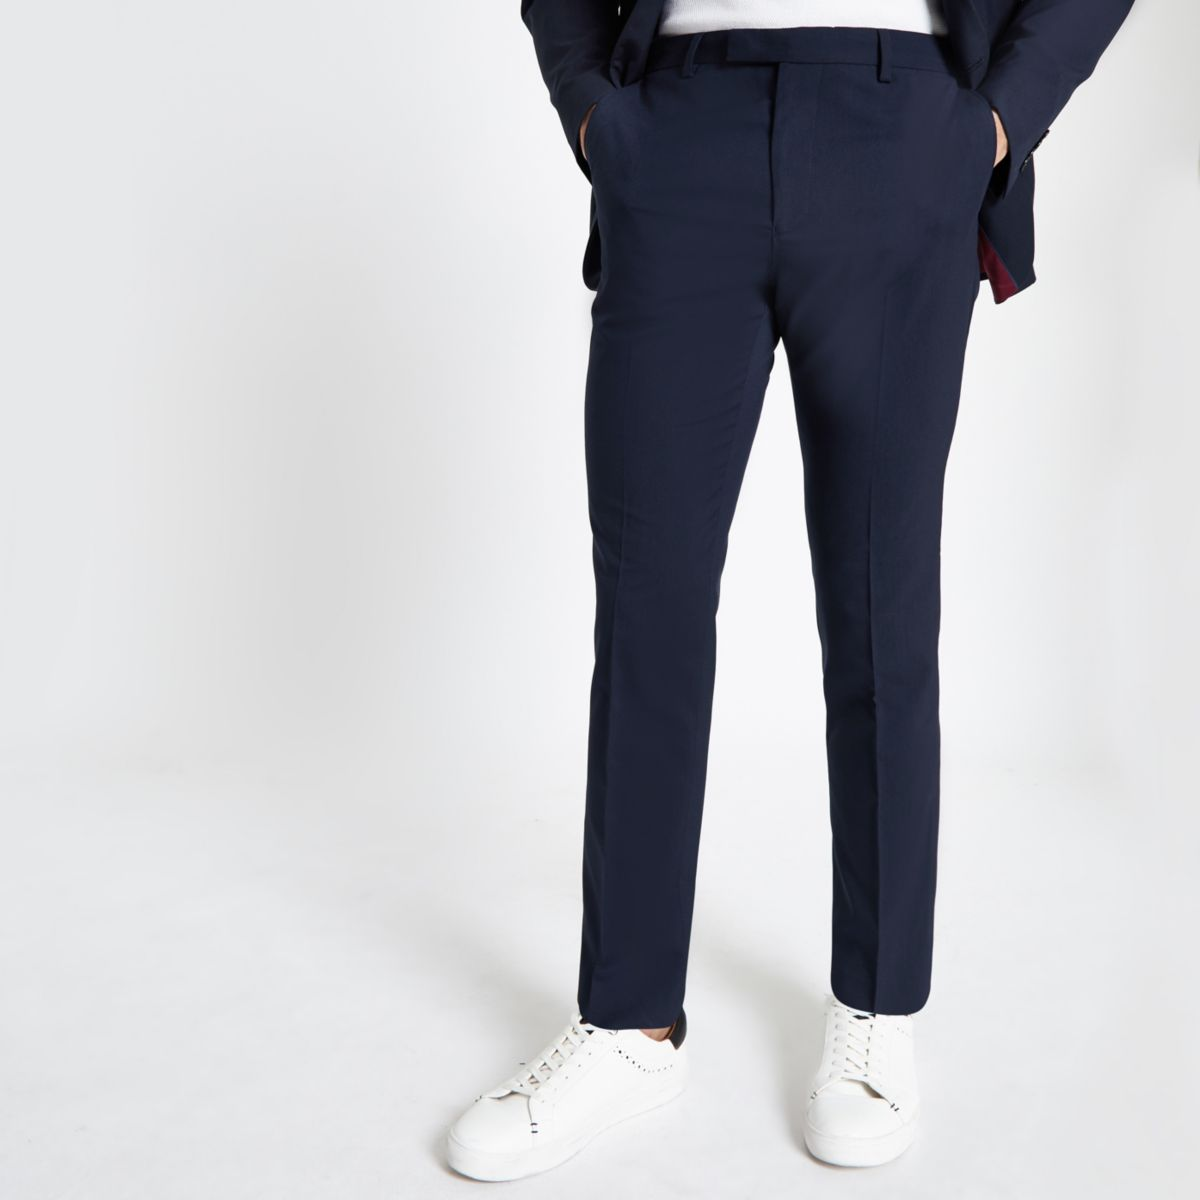 Navy slim fit suit trousers